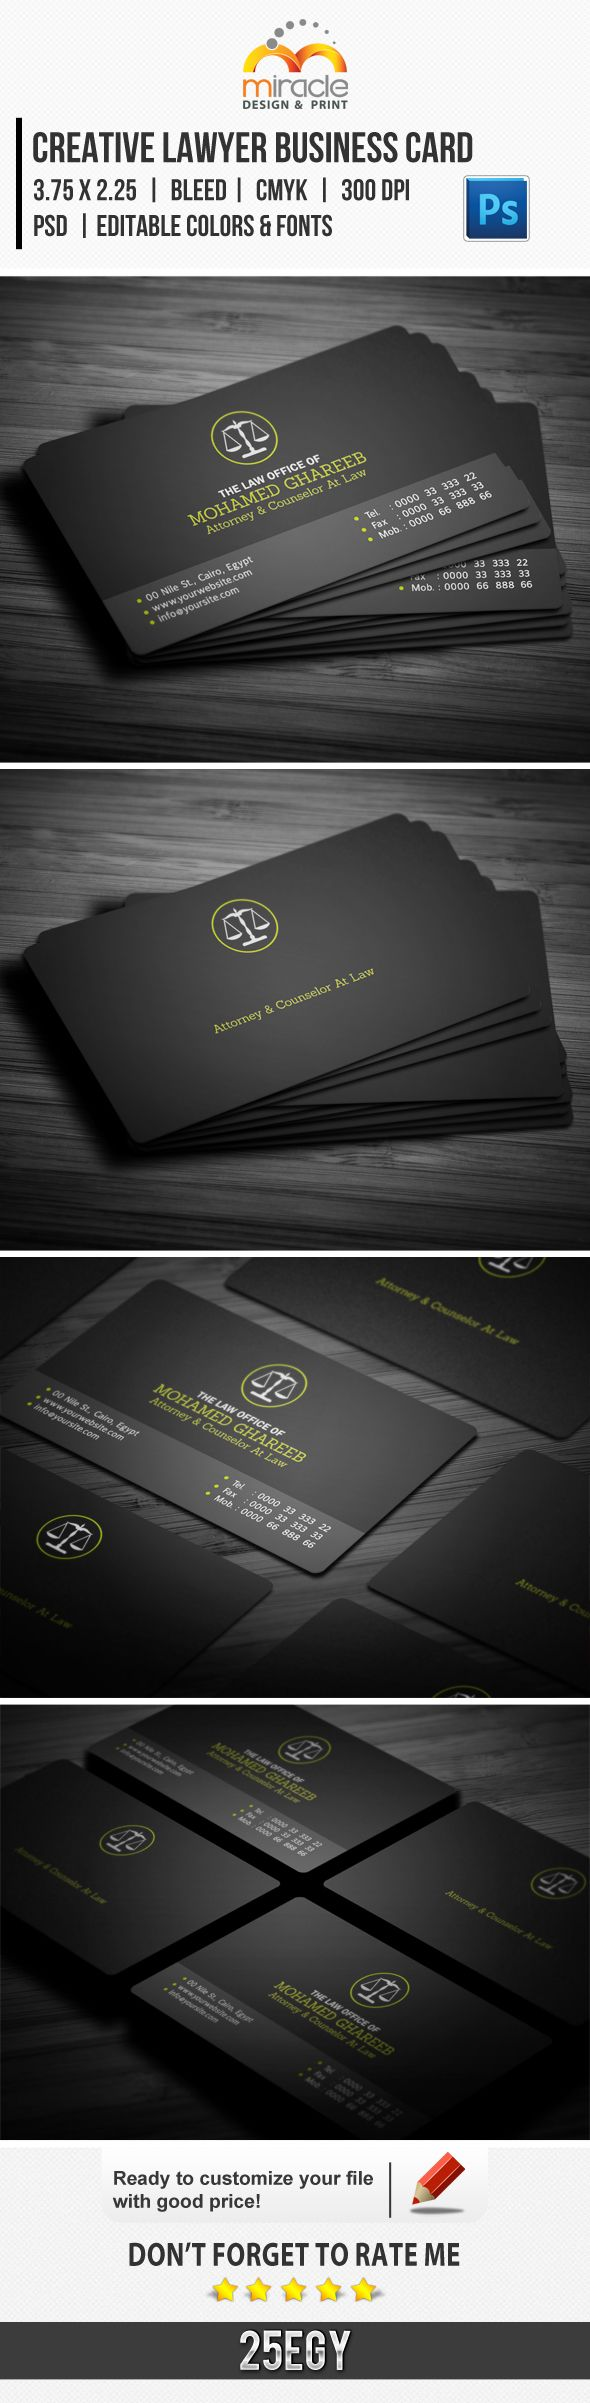 Creative Lawyer Business Card by EgYpToS